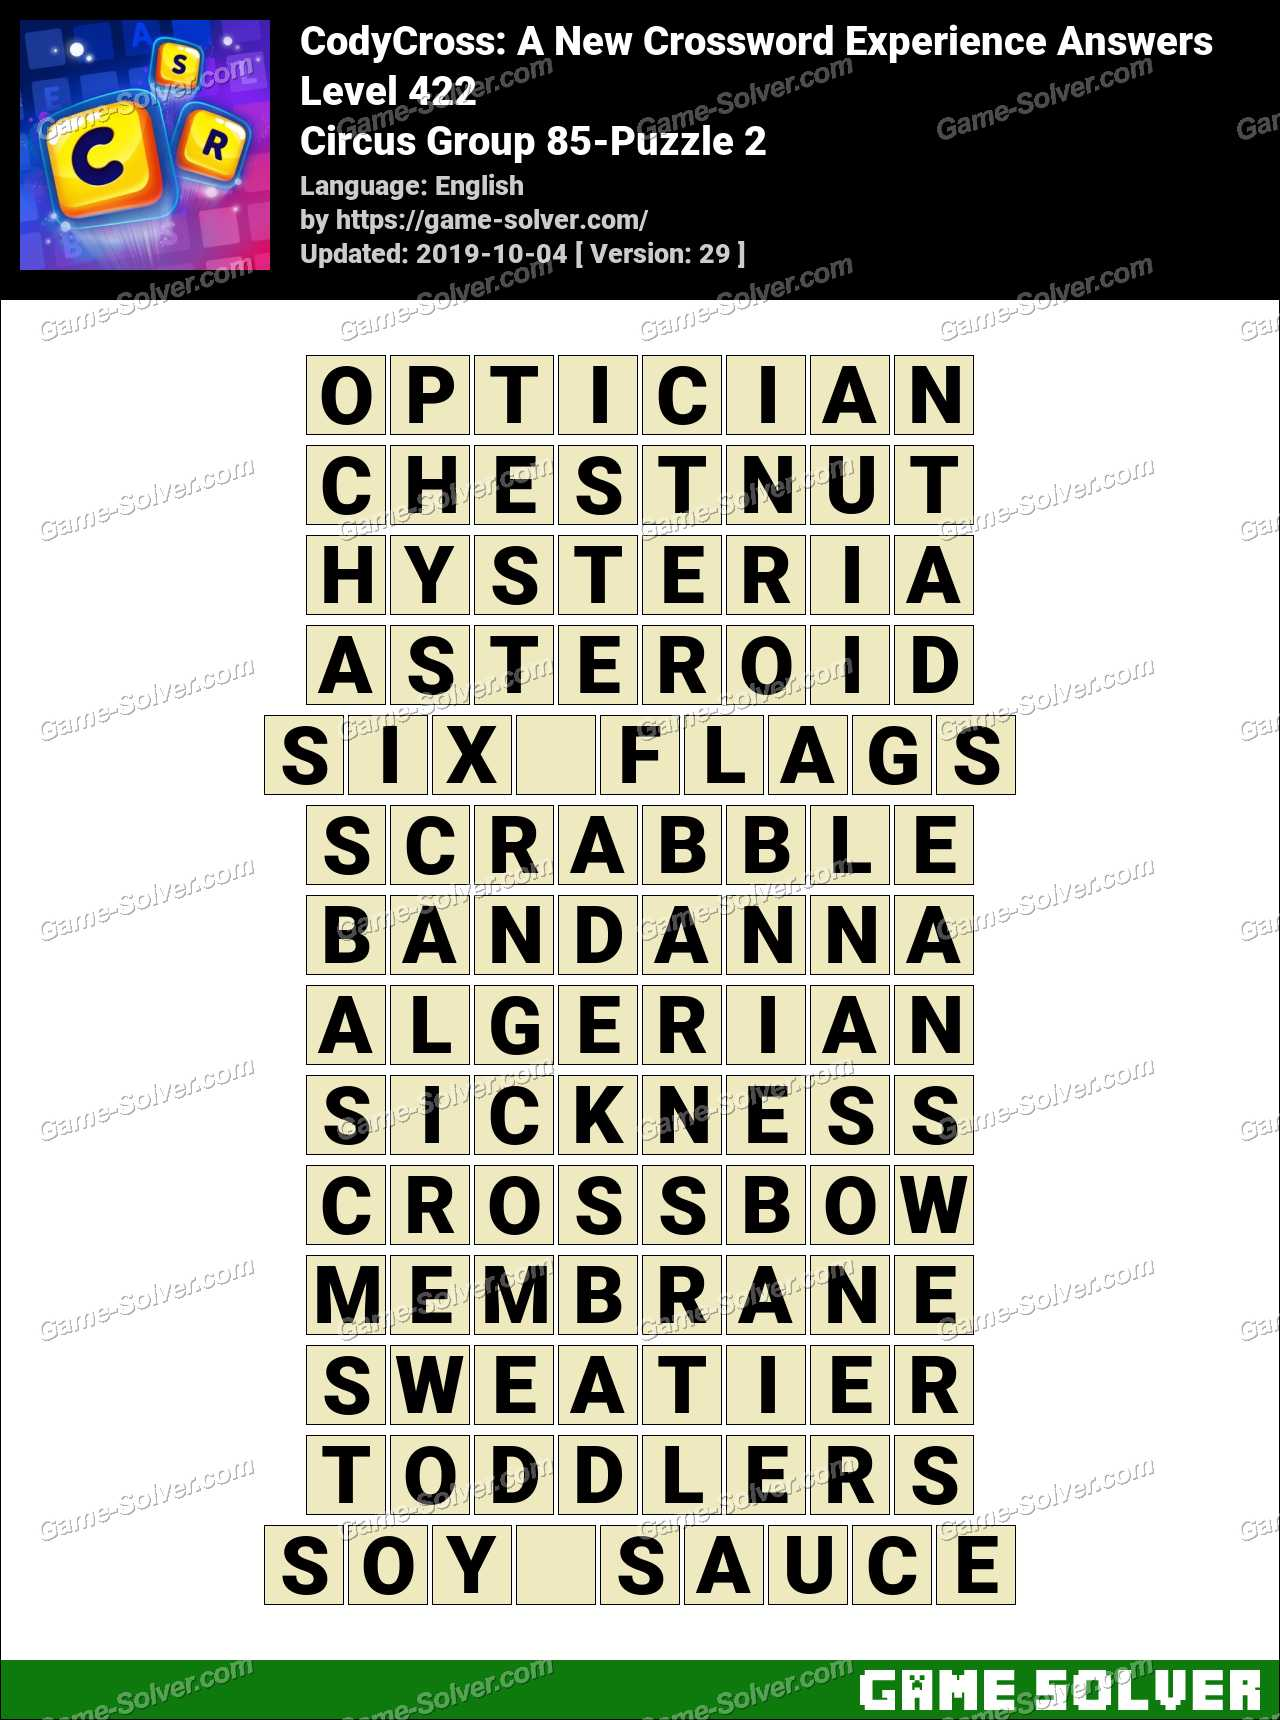 CodyCross Circus Group 85-Puzzle 2 Answers